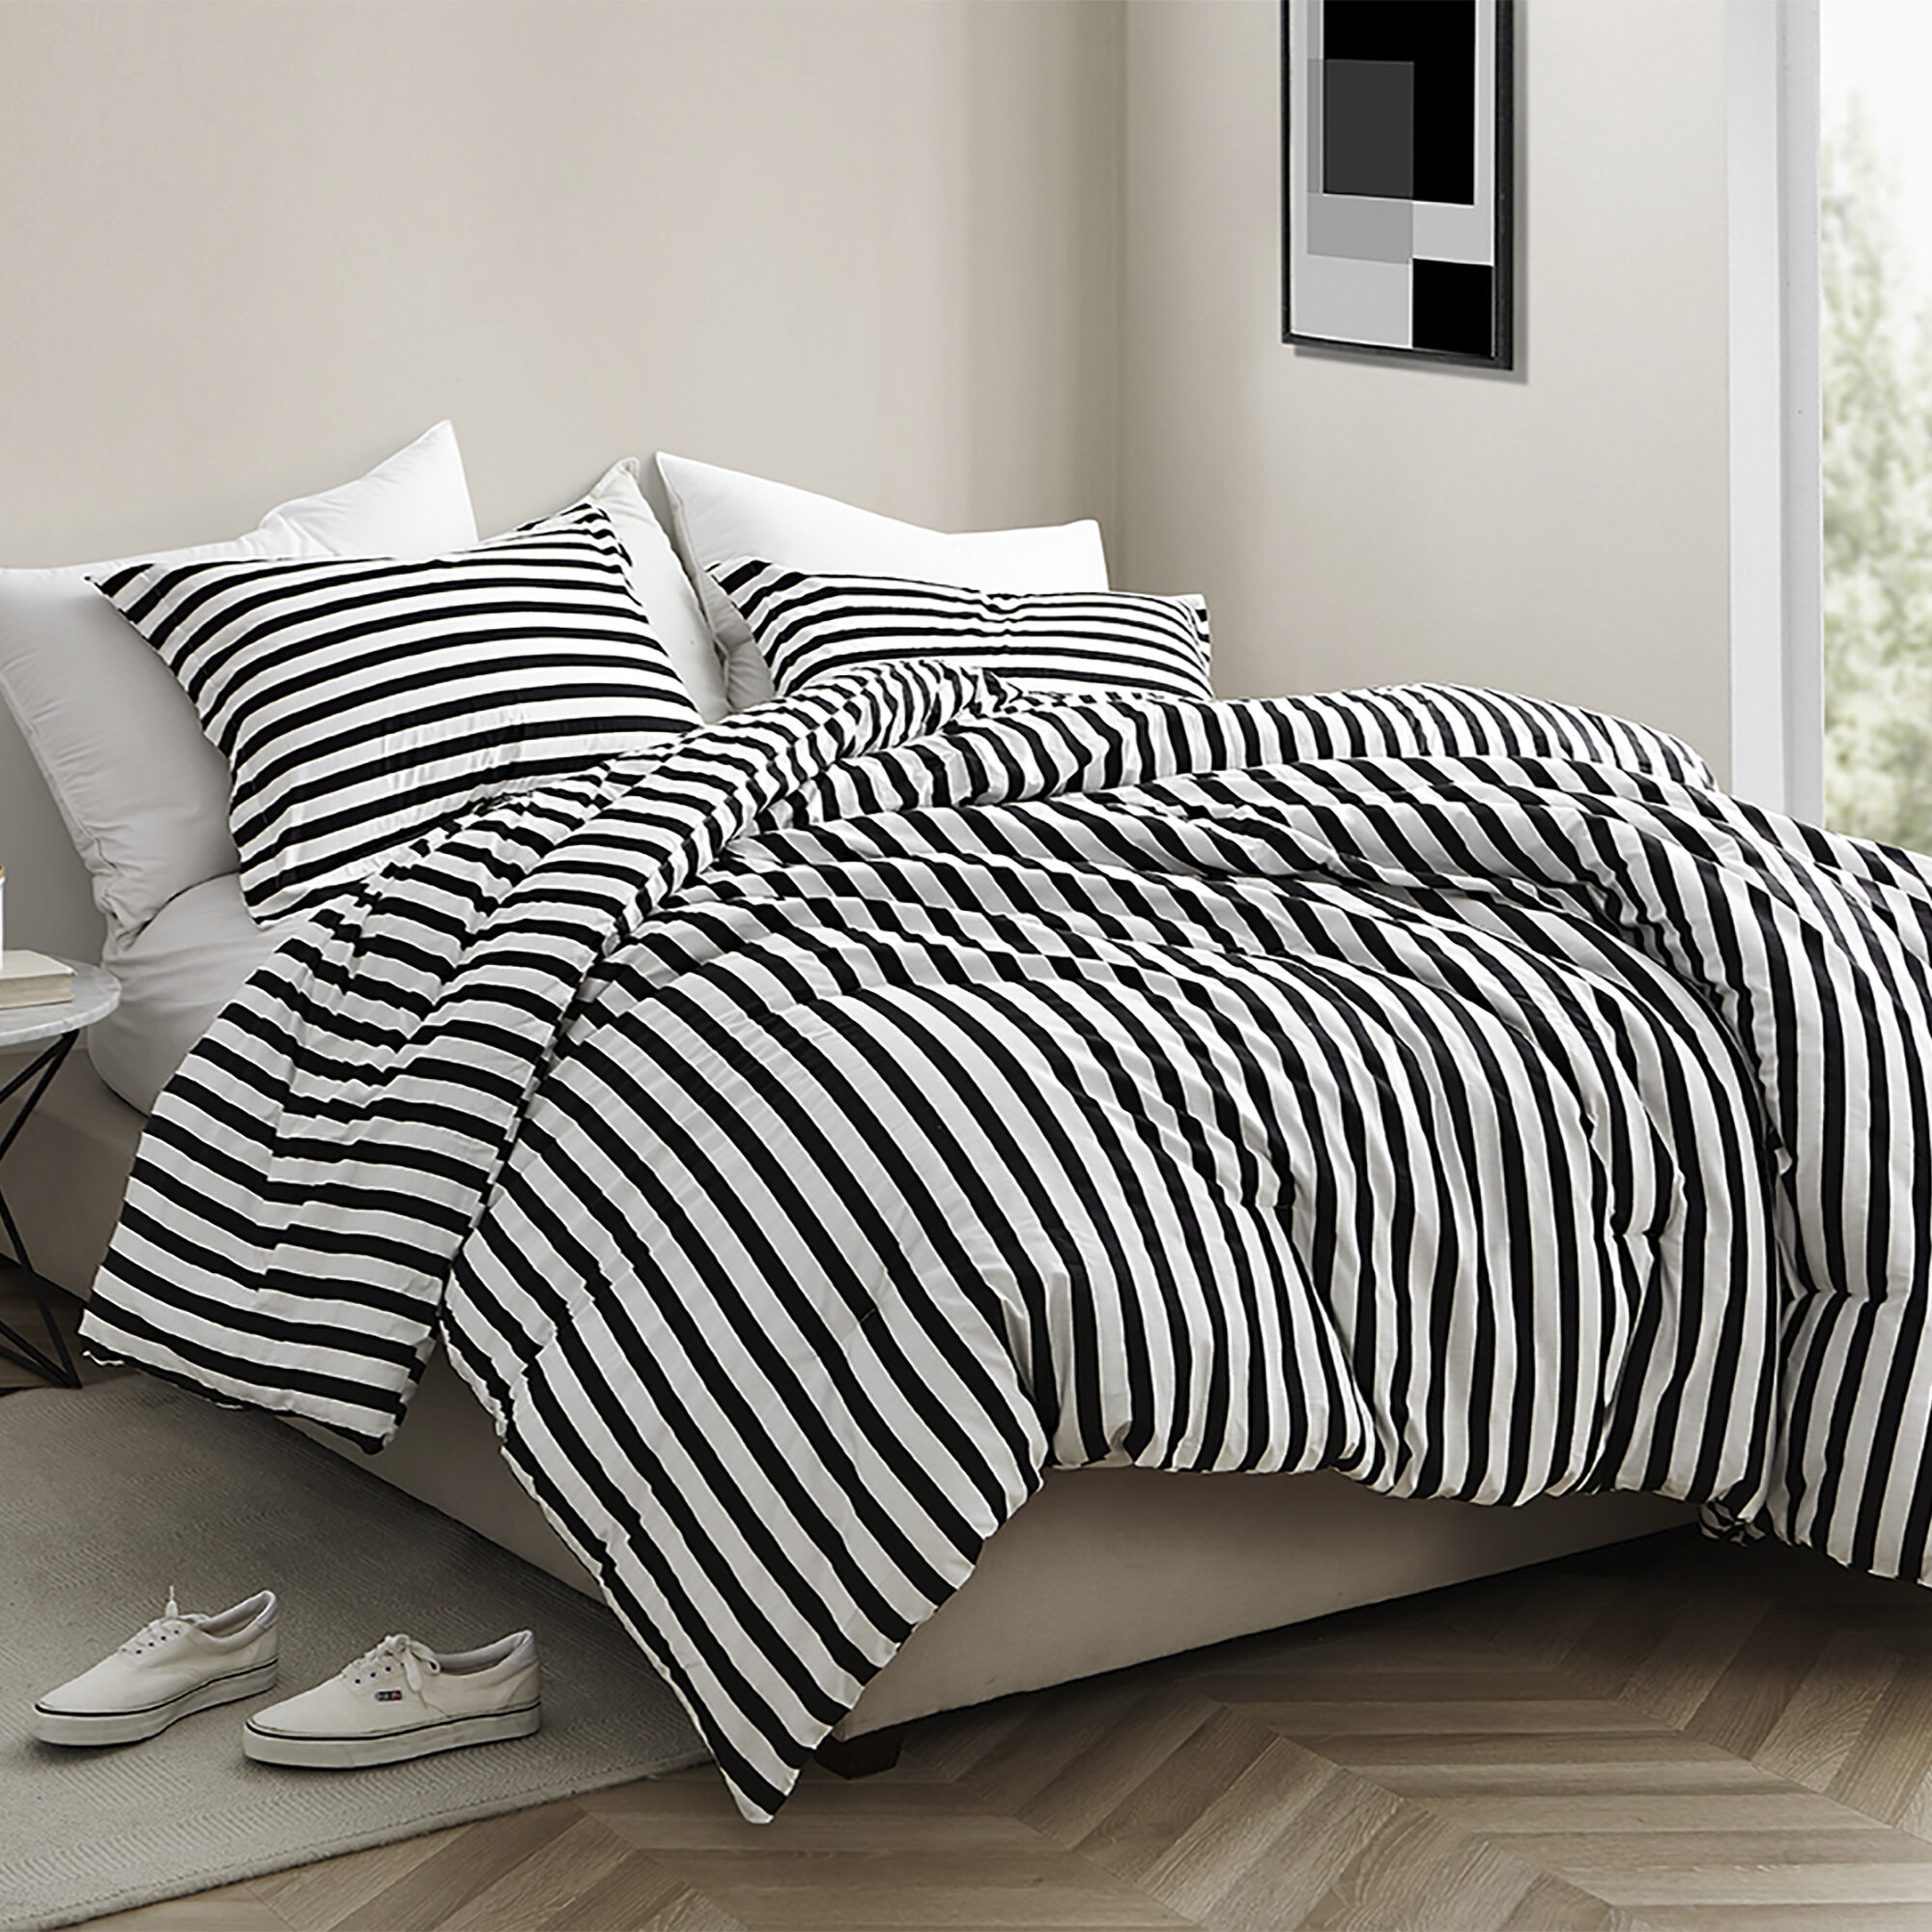 Wrought Studio Dorcaster Striped Comforter Set & Reviews | Wayfair